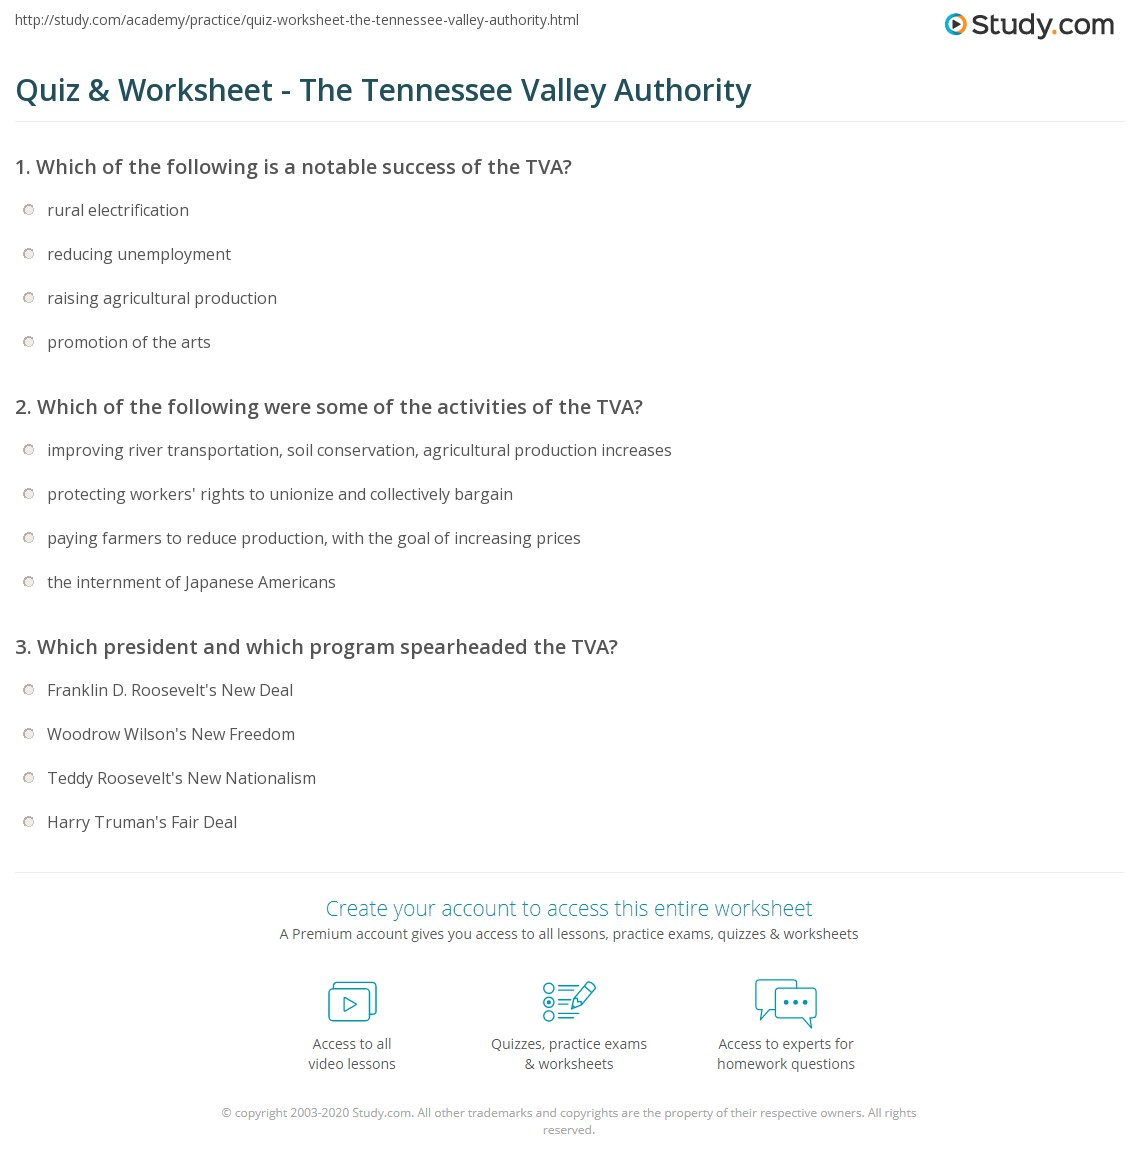 Quiz & Worksheet - The Tennessee Valley Authority | Study.com